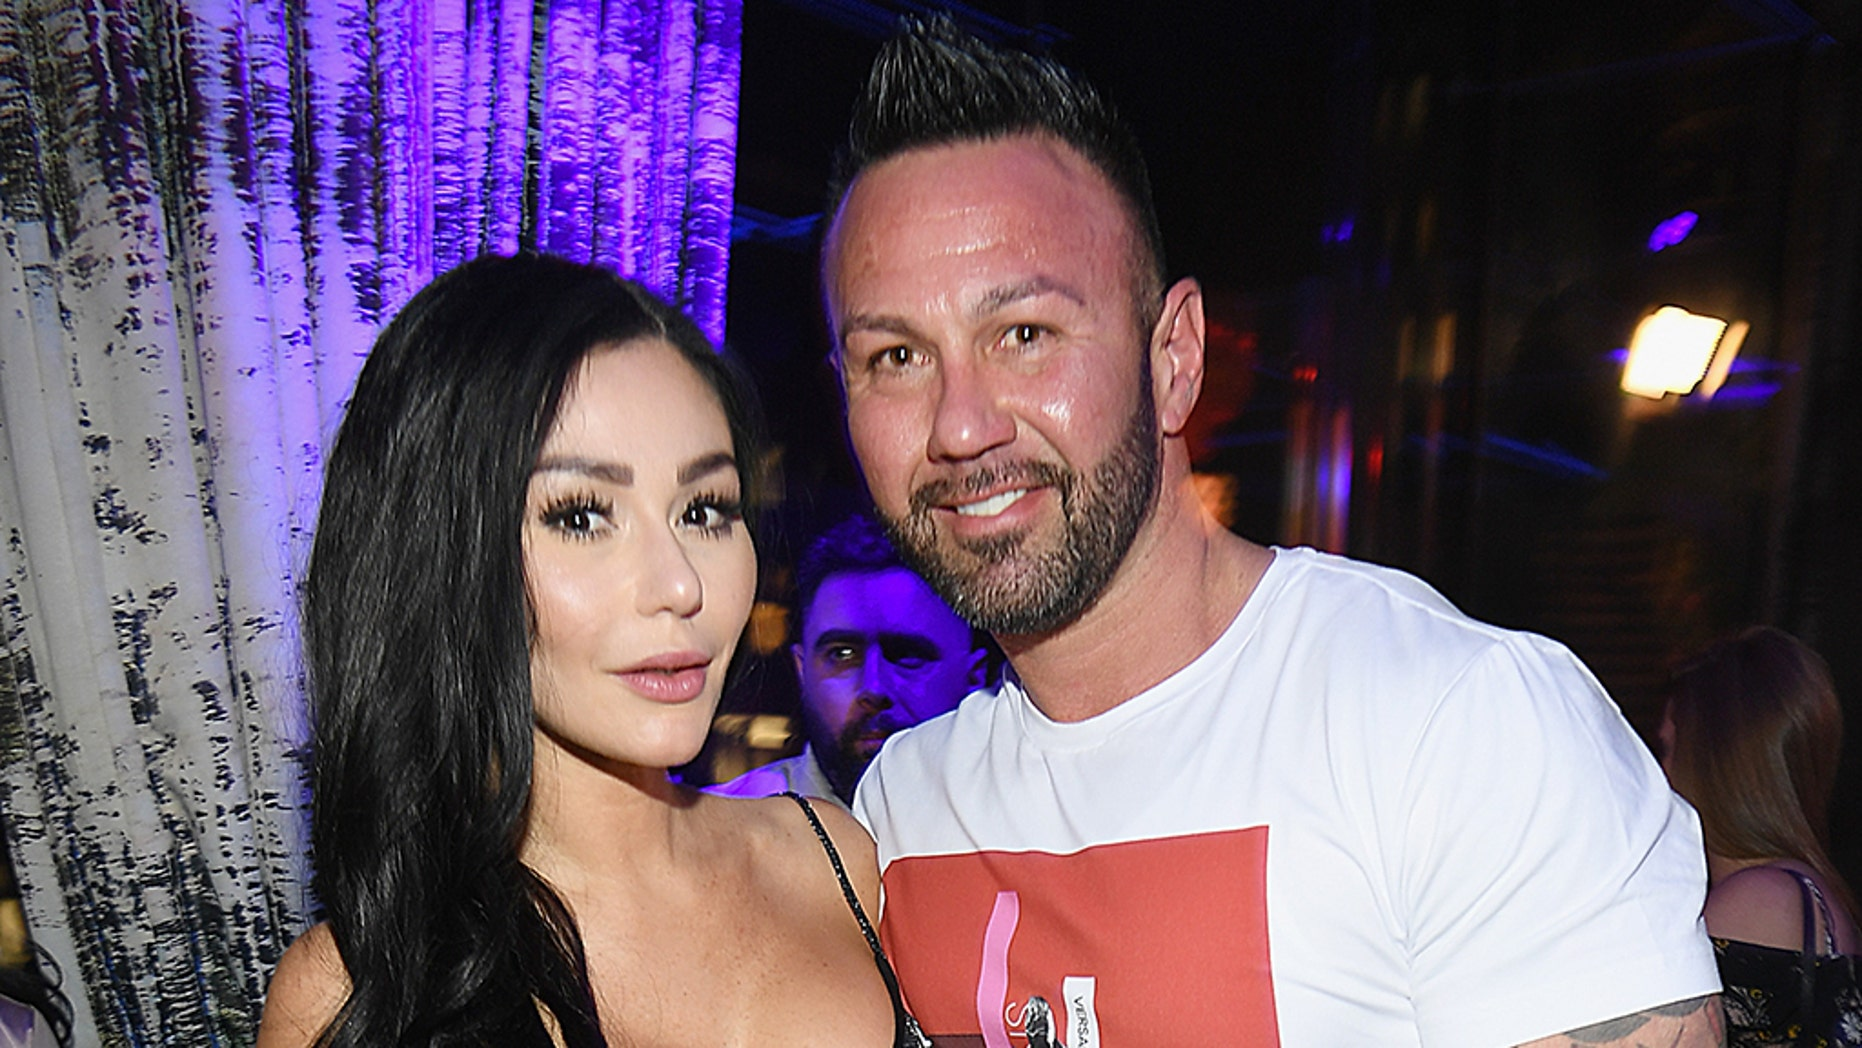 """""""Jersey Shore"""" star Jenni """"JWoww"""" Farley has reportedly called it quits with husband Roger Mathews, according to multiple outlets."""